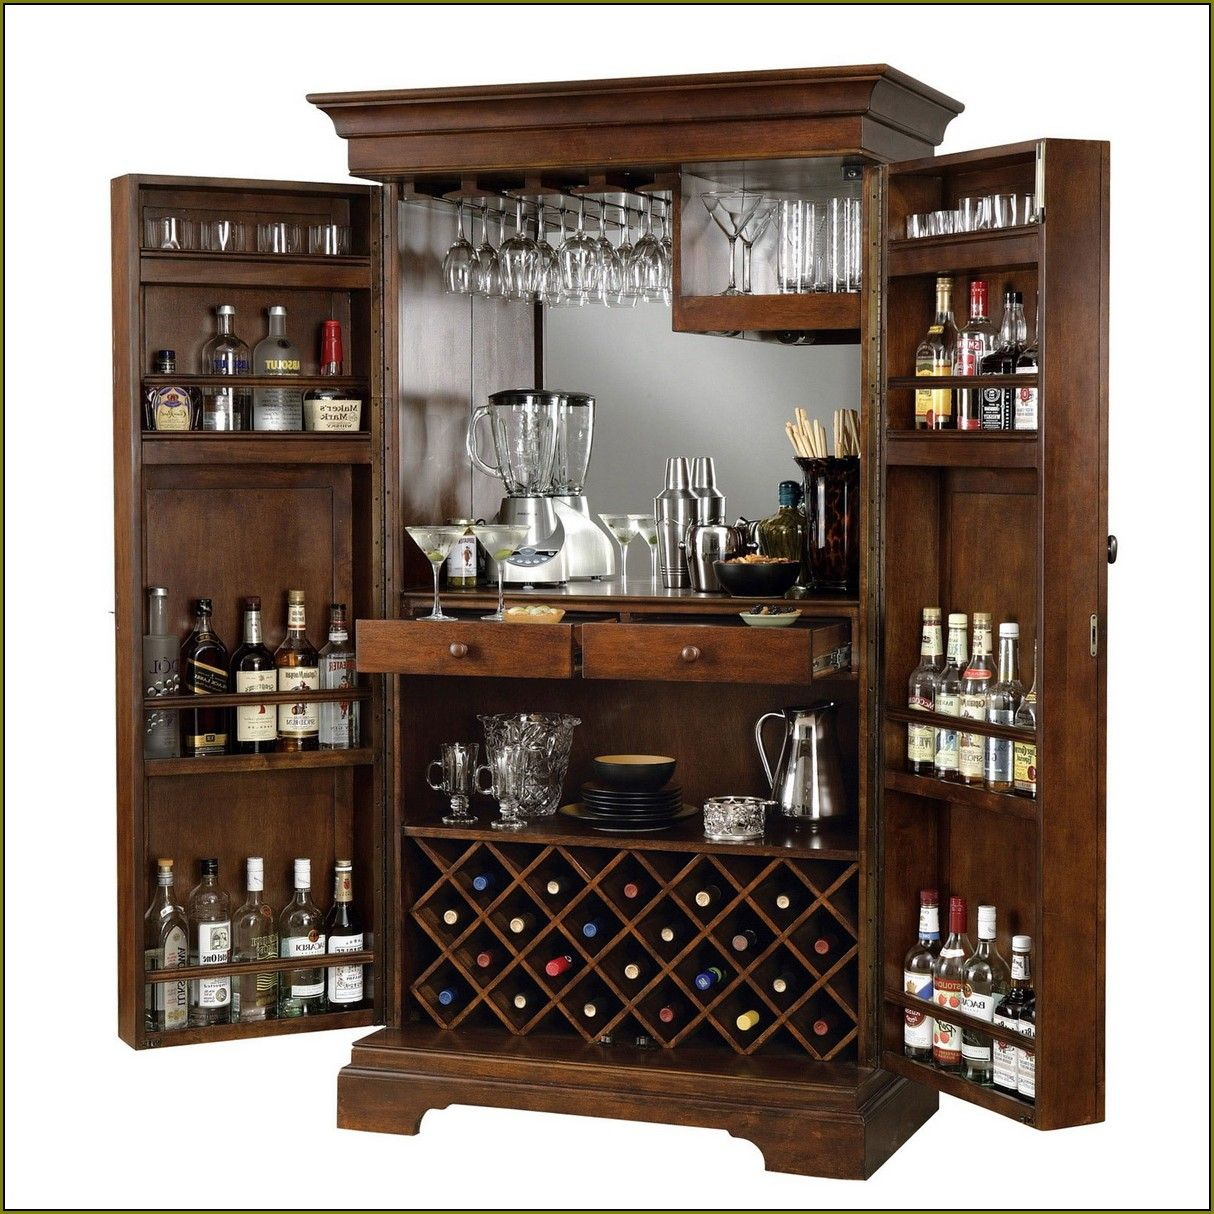 furniture your design brown great transparent wooden of liquor shelves add glass having interior also to hutch cabinet ideas board door